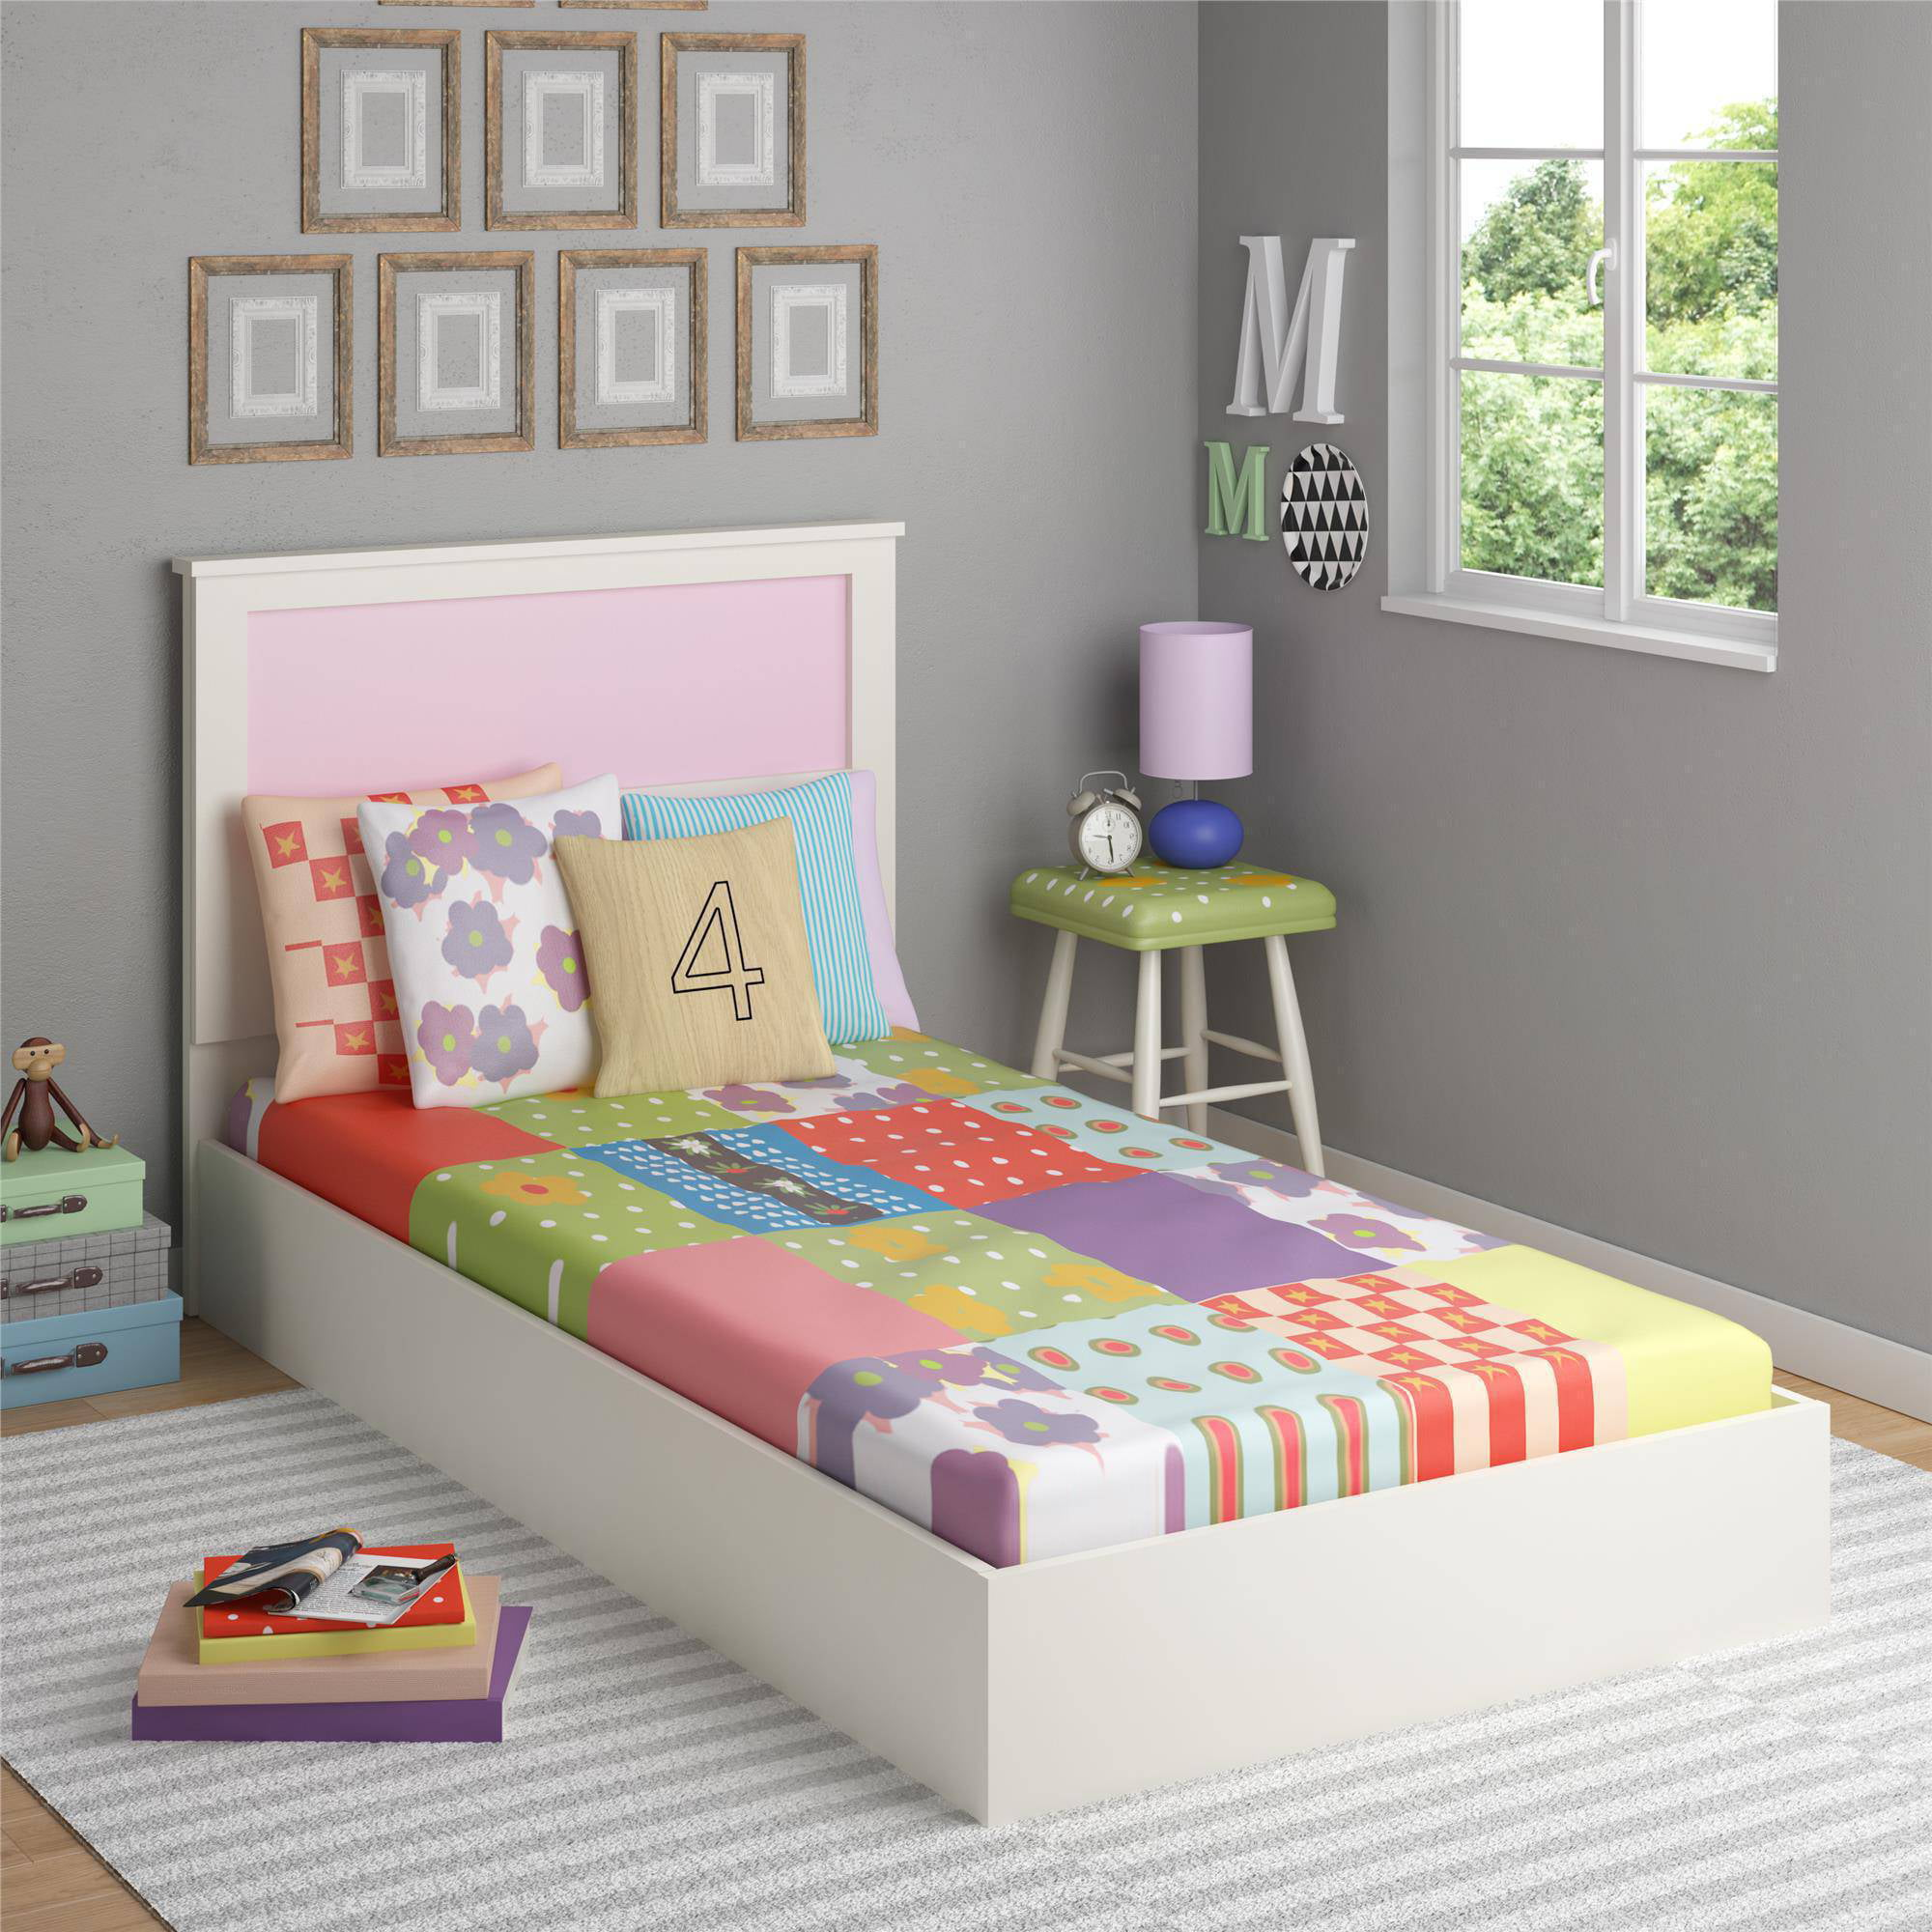 Ameriwood Home Skyler Twin Bed With Reversible Headboard, Multiple Colors    Walmart.com